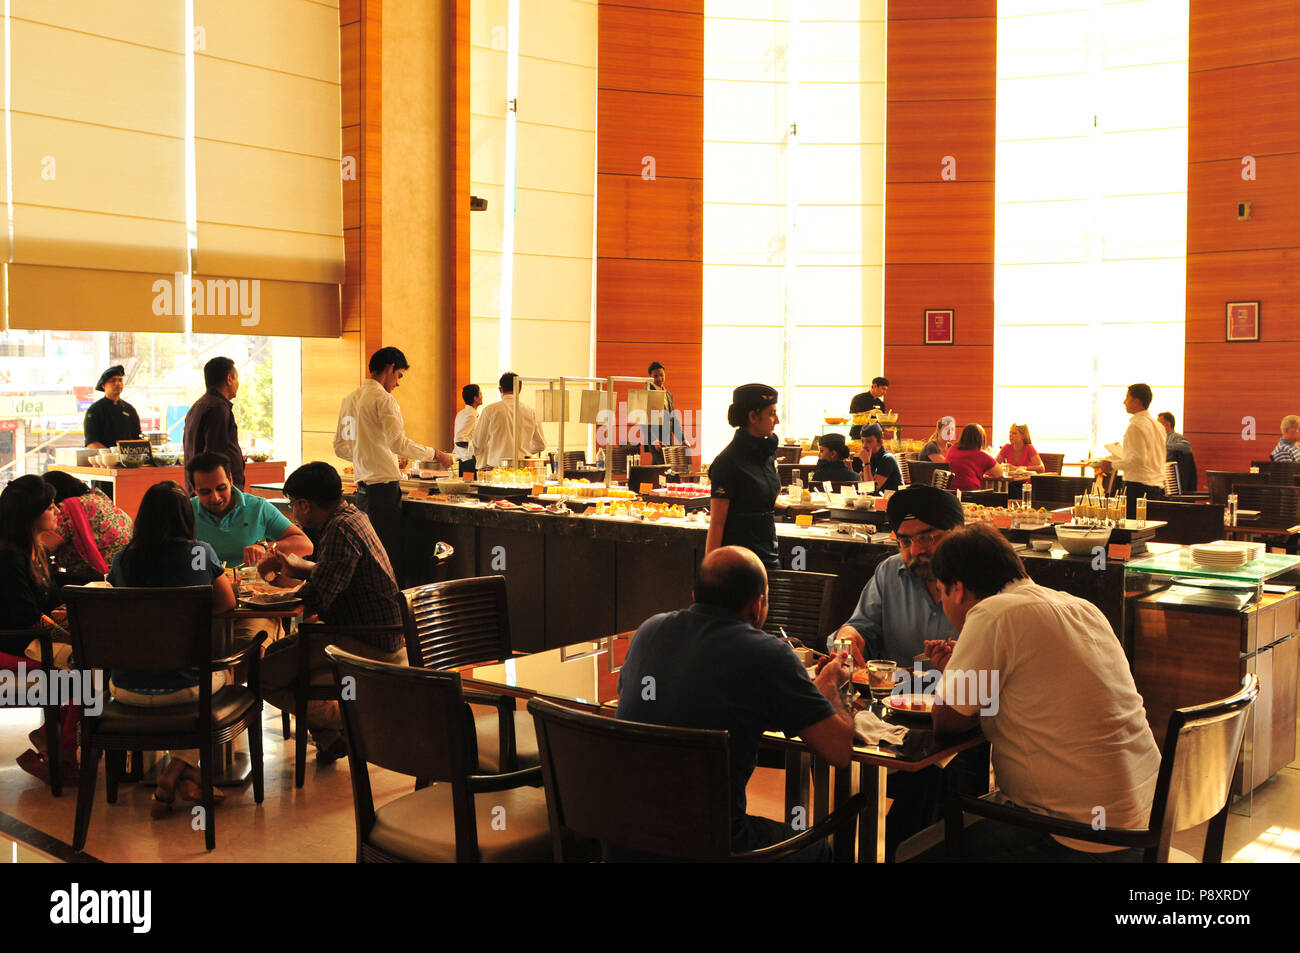 Gujarat: Lunch at the Mariott Courtyard Restaurant in Ahmedabad - Stock Image